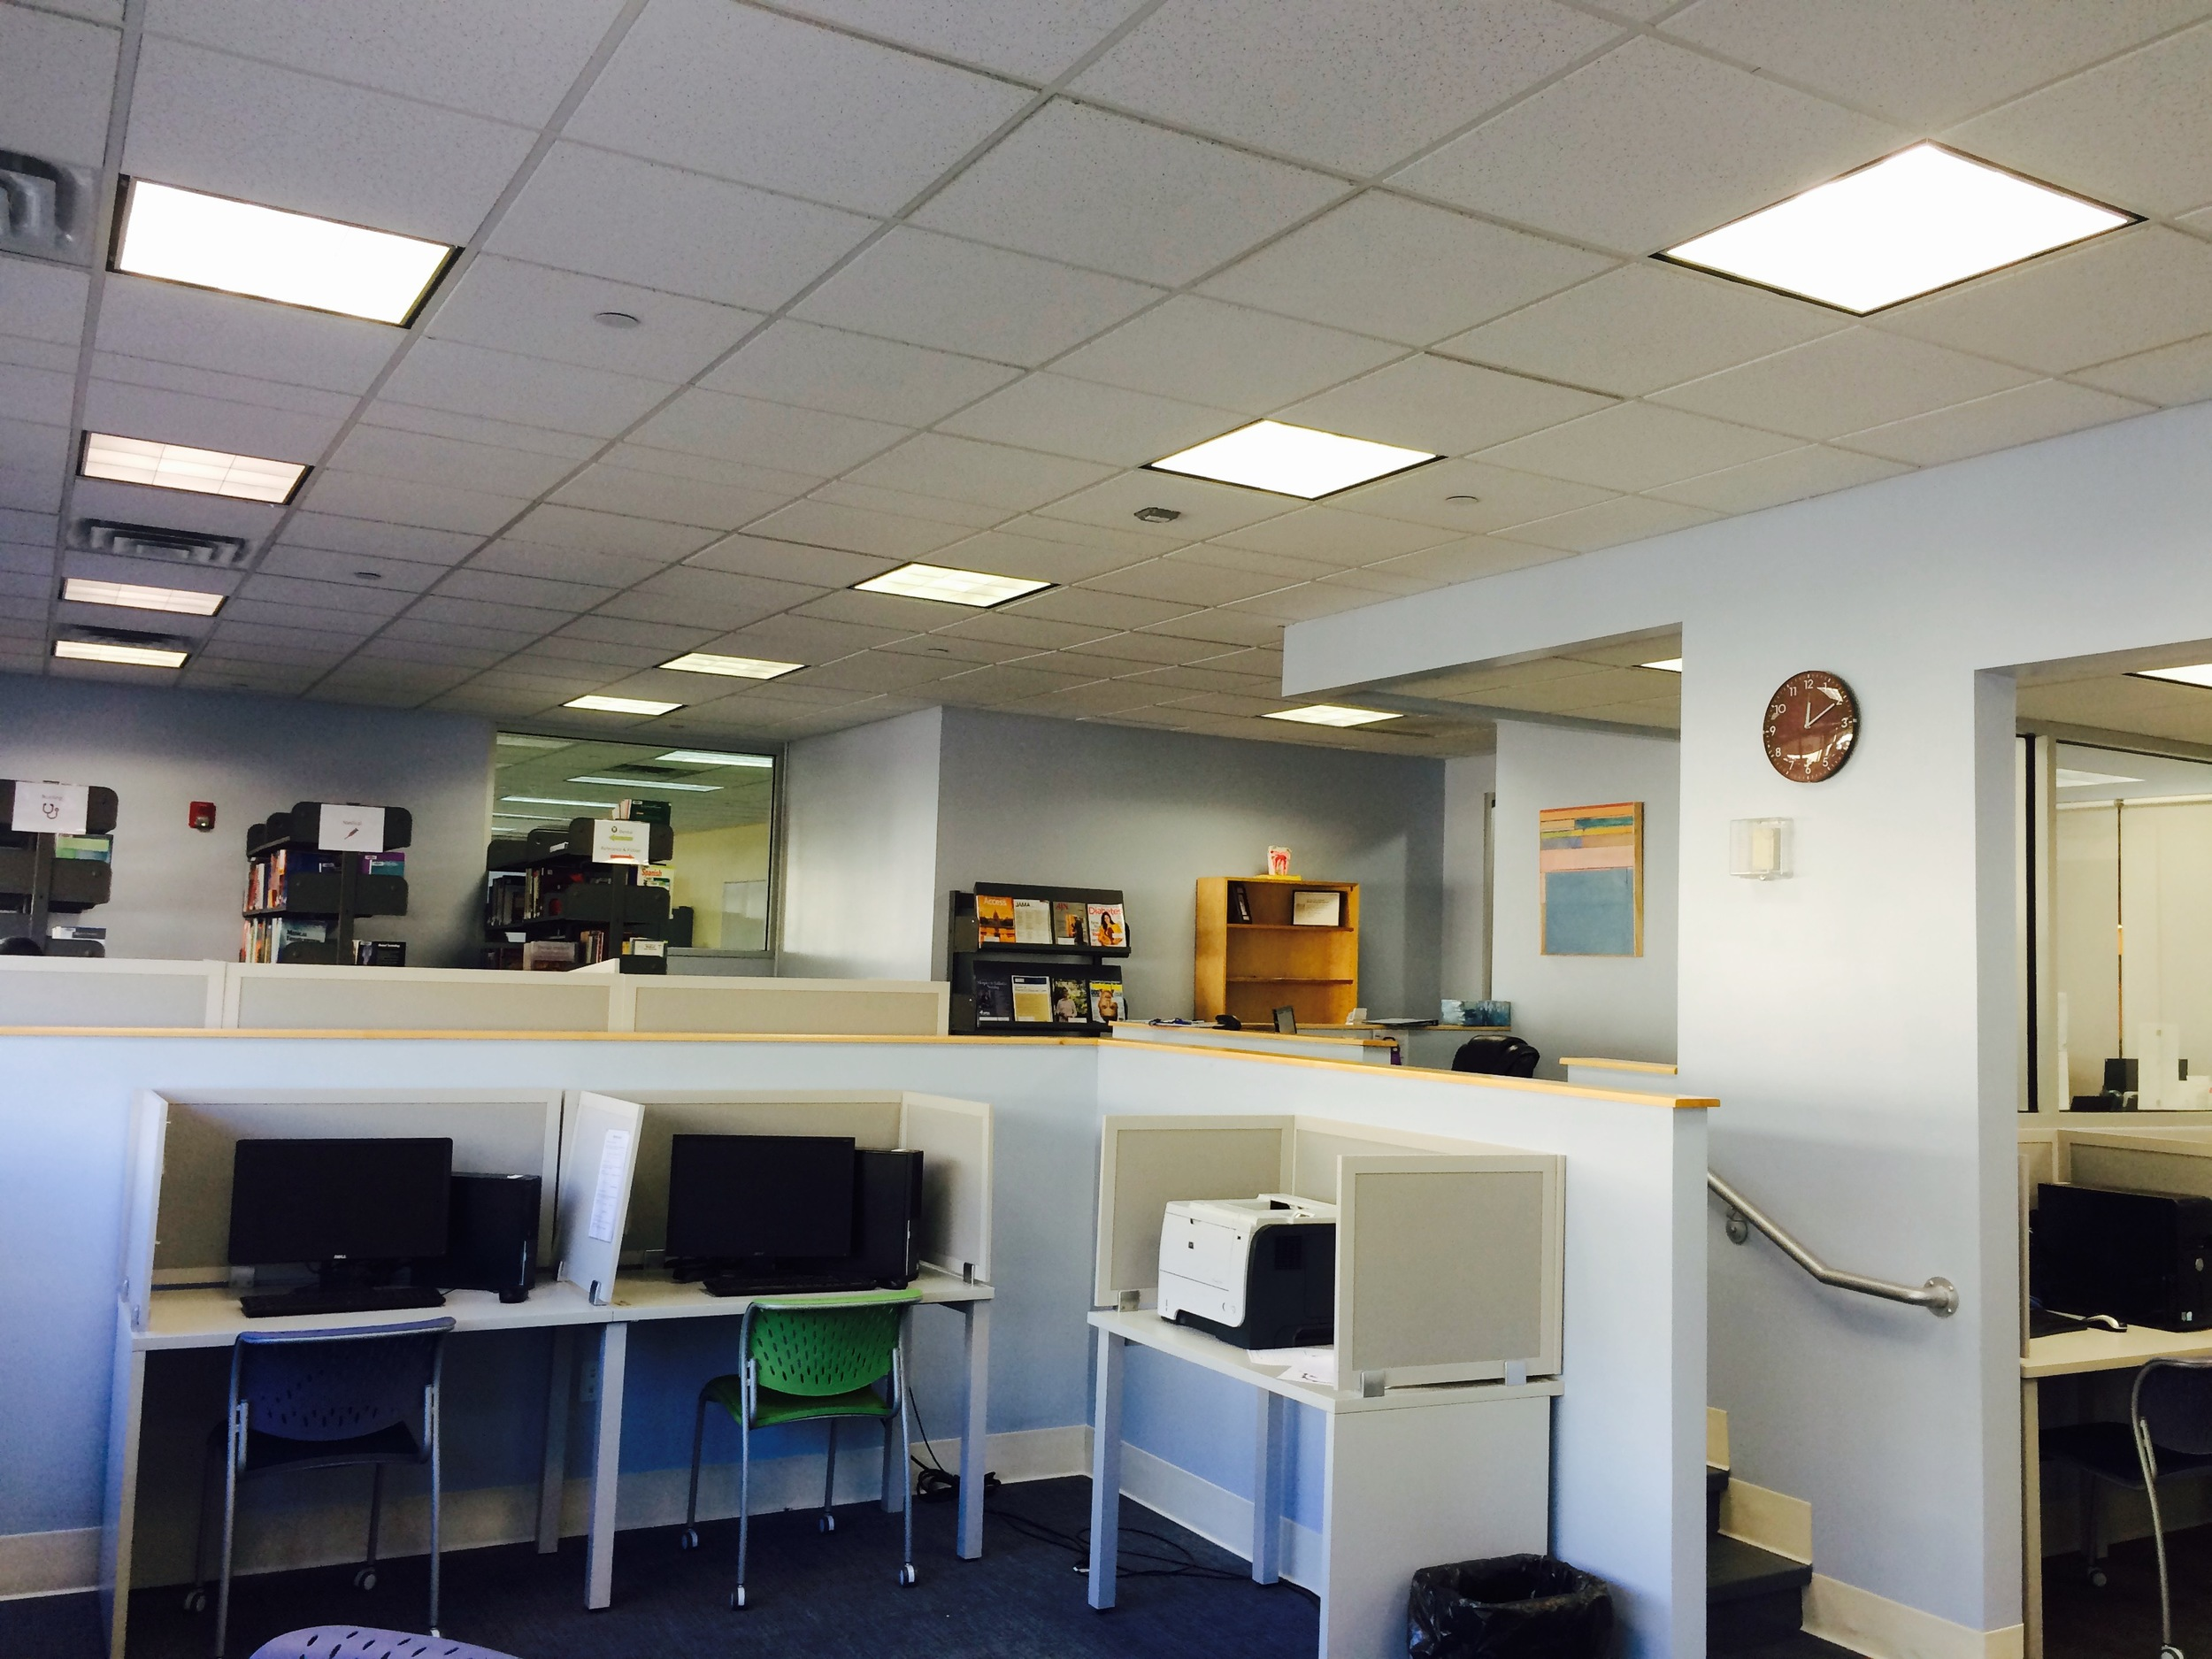 nysmda library computer stations